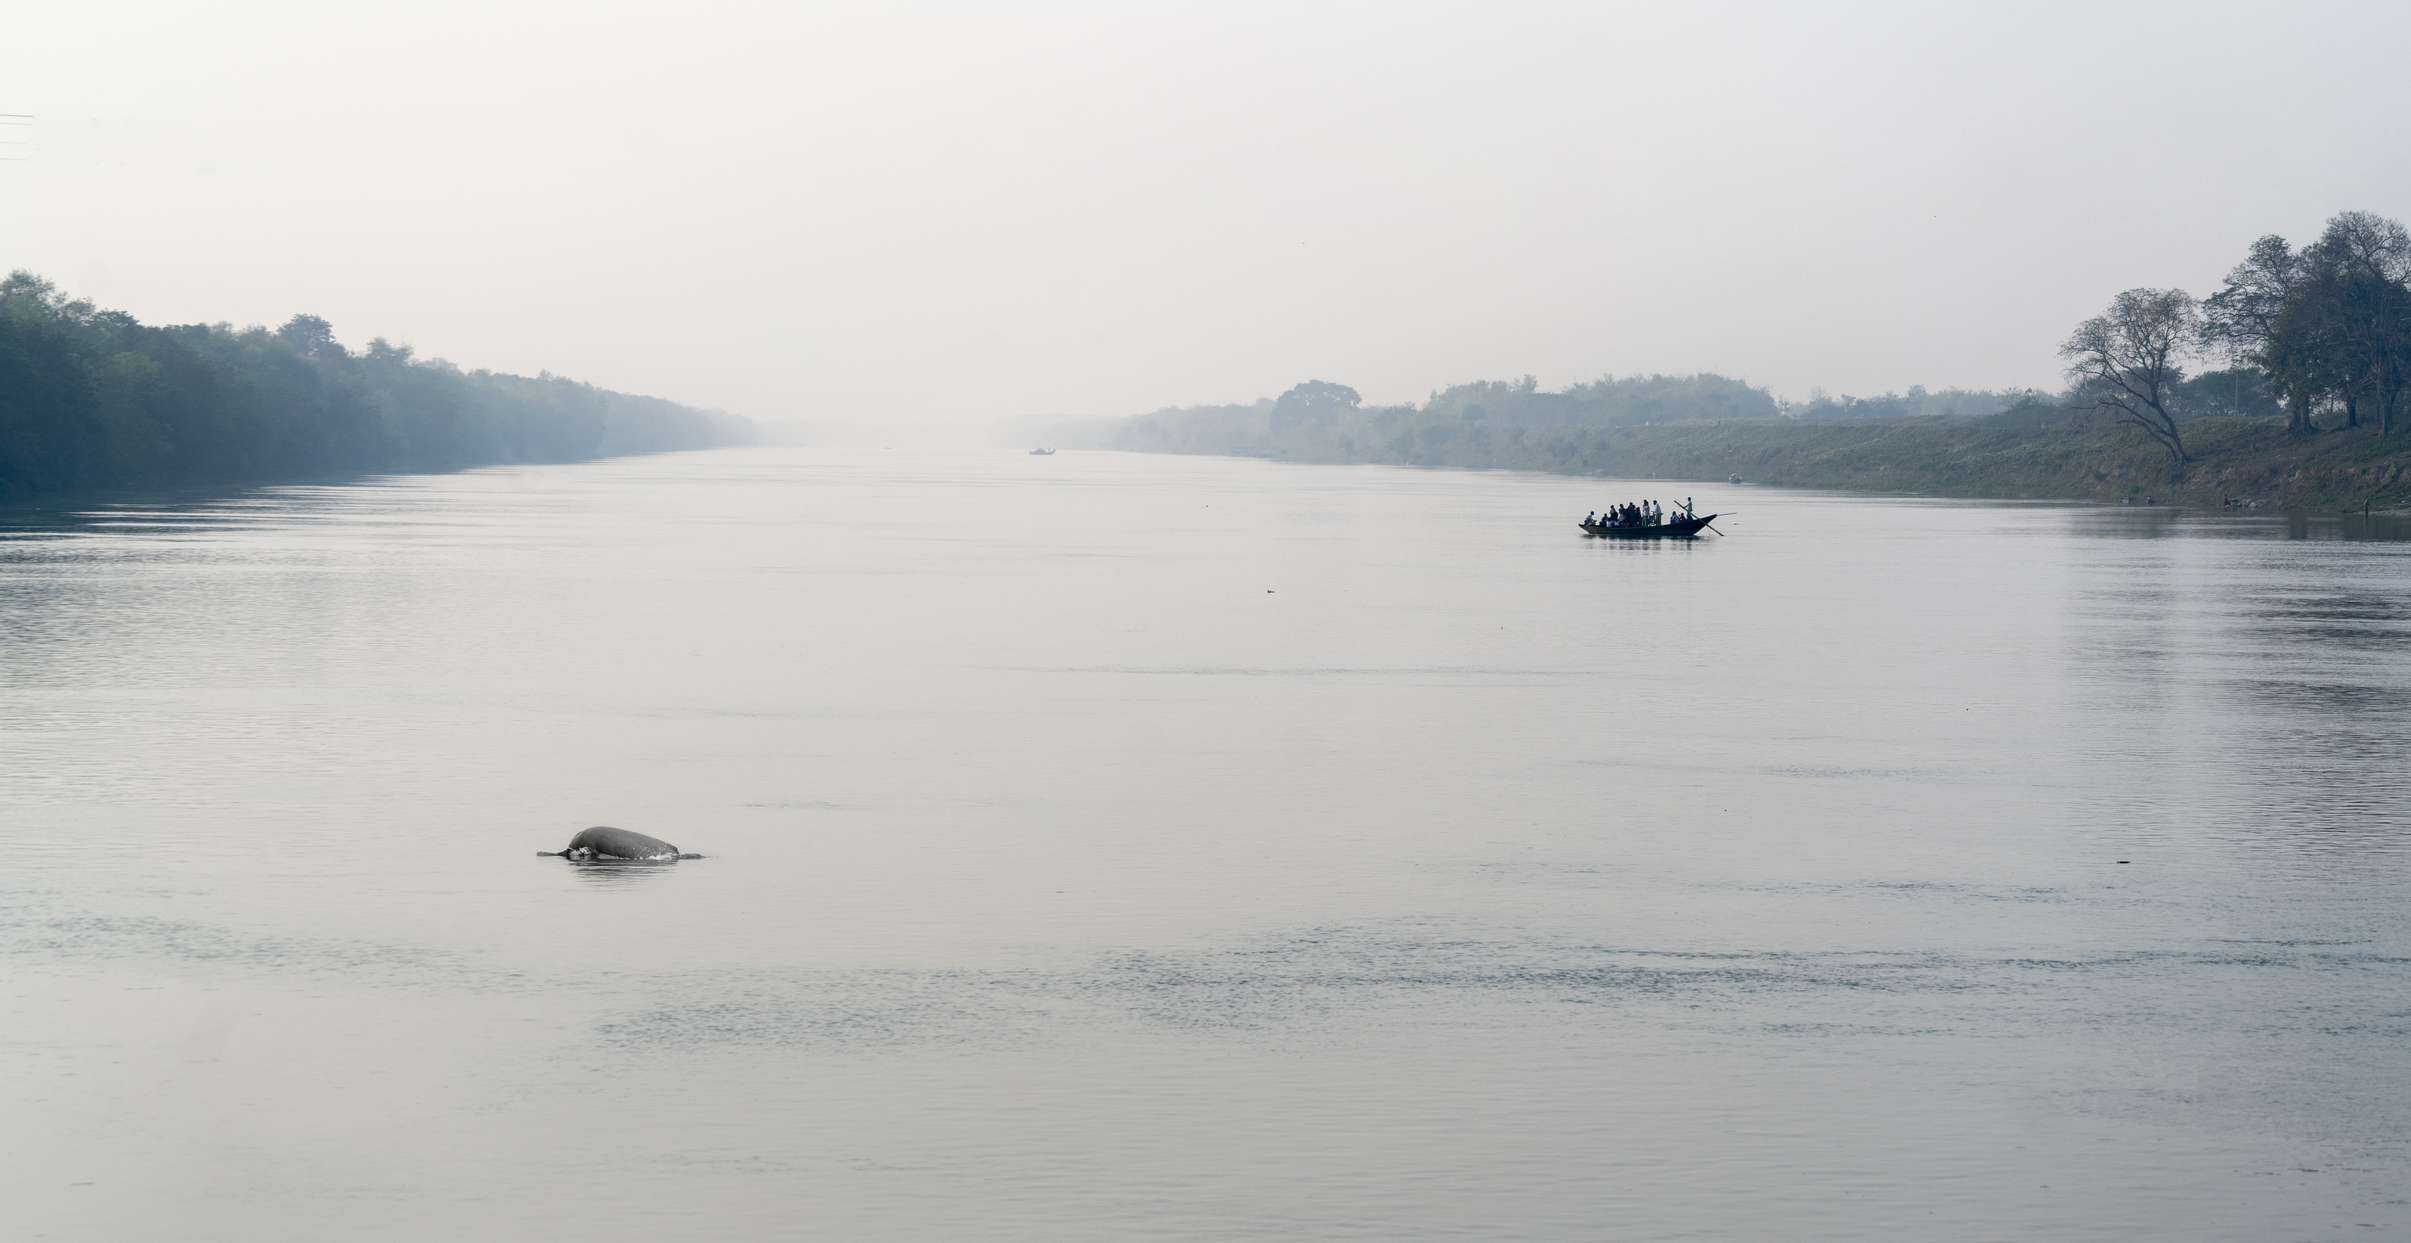 Ganges river dolphin and a boat carrying people crossing Ganges river